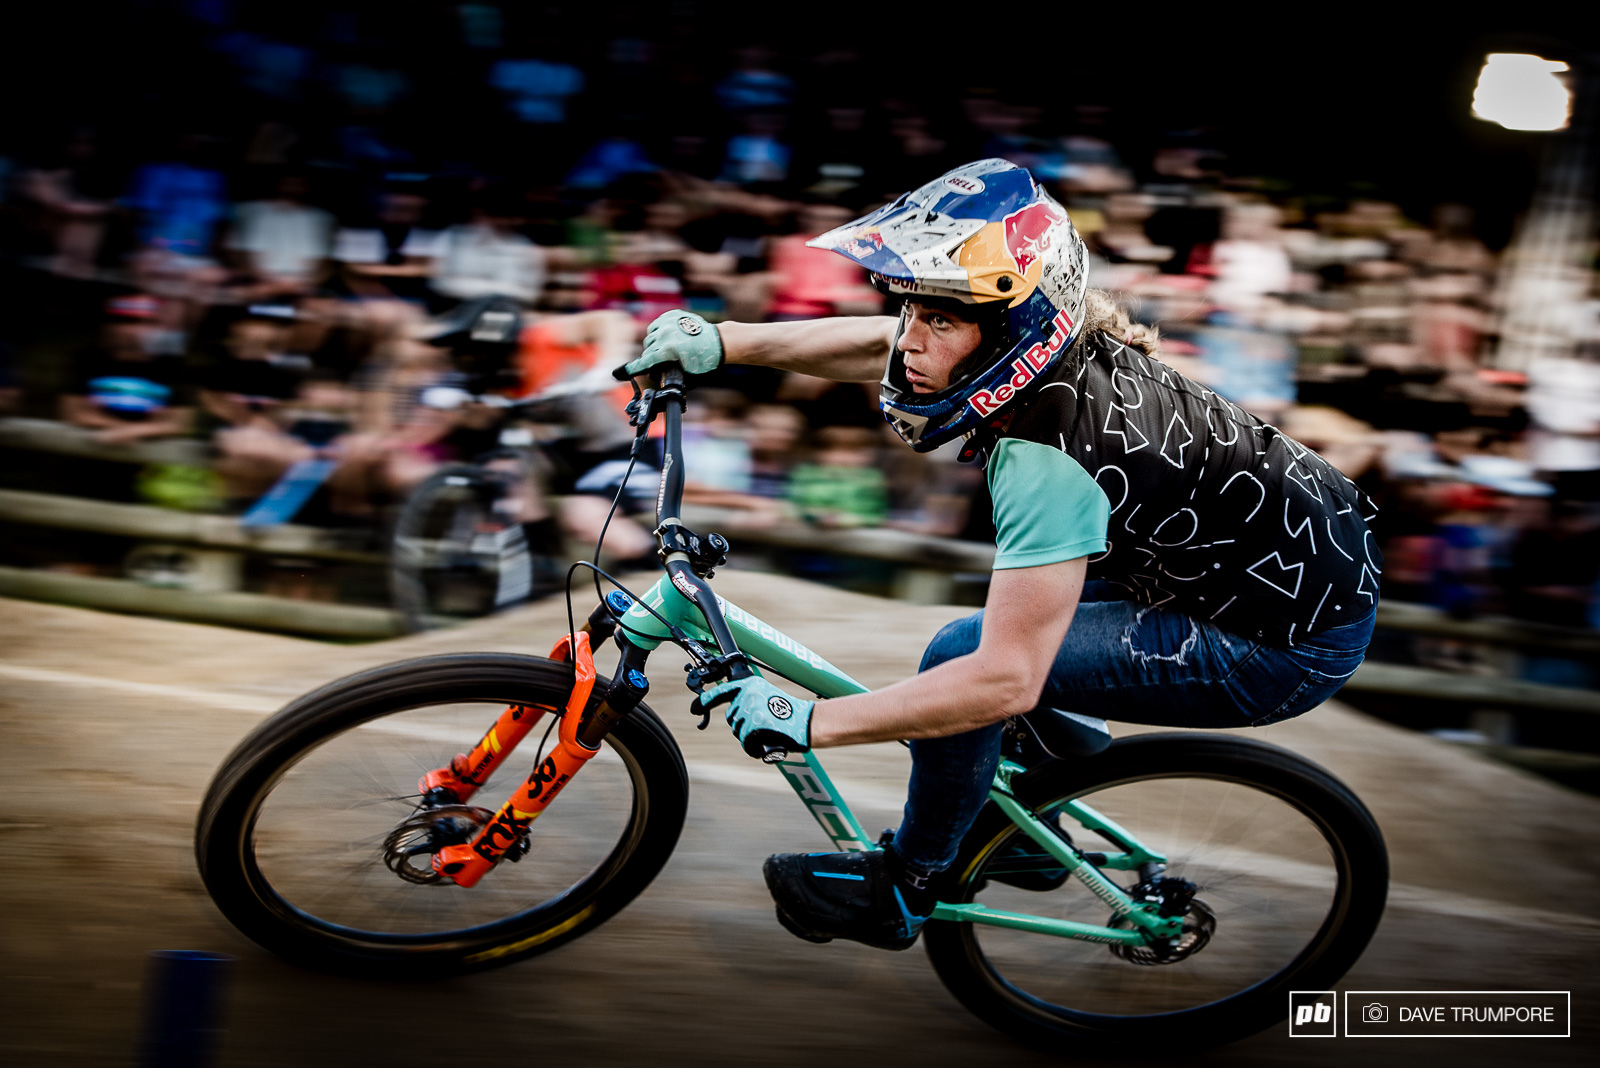 After winning all three pump track events at last year s Crankworx Jill Kintner found her match in Rotorua.